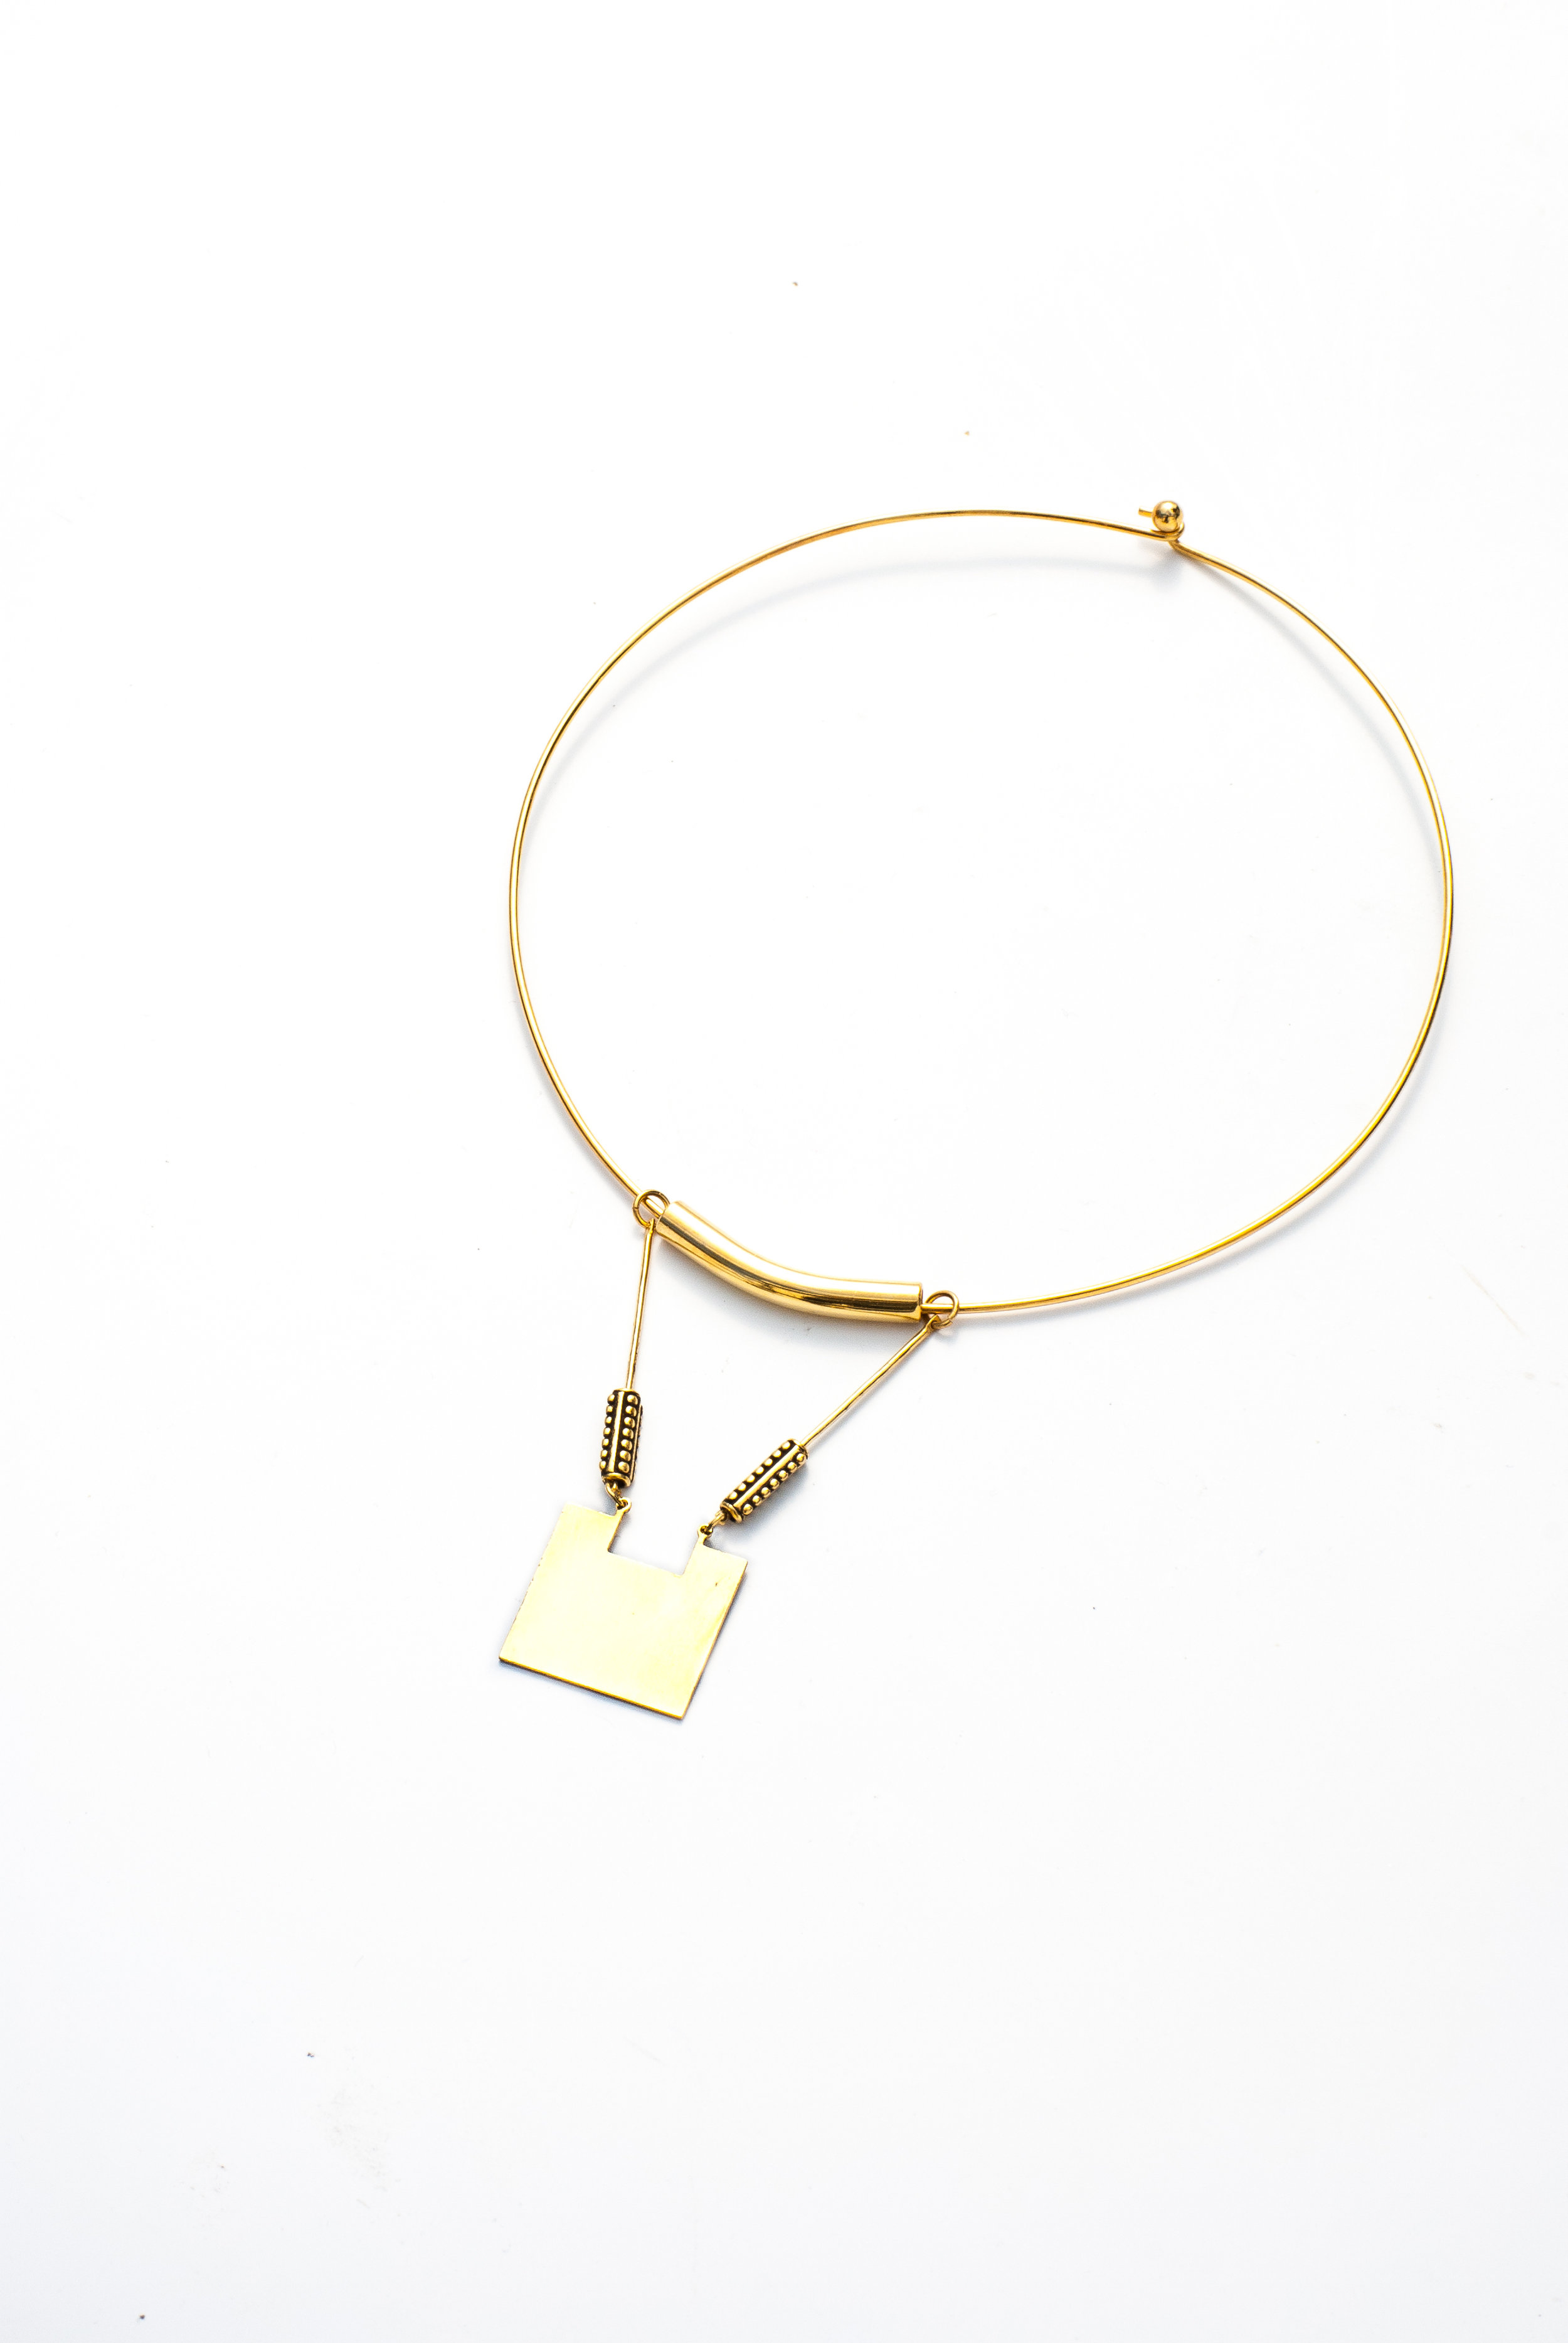 Cleo Collar Necklace   The Cleo Set was carefully crafted with salvaged brass components. Perfect addition to your favorite summer looks.